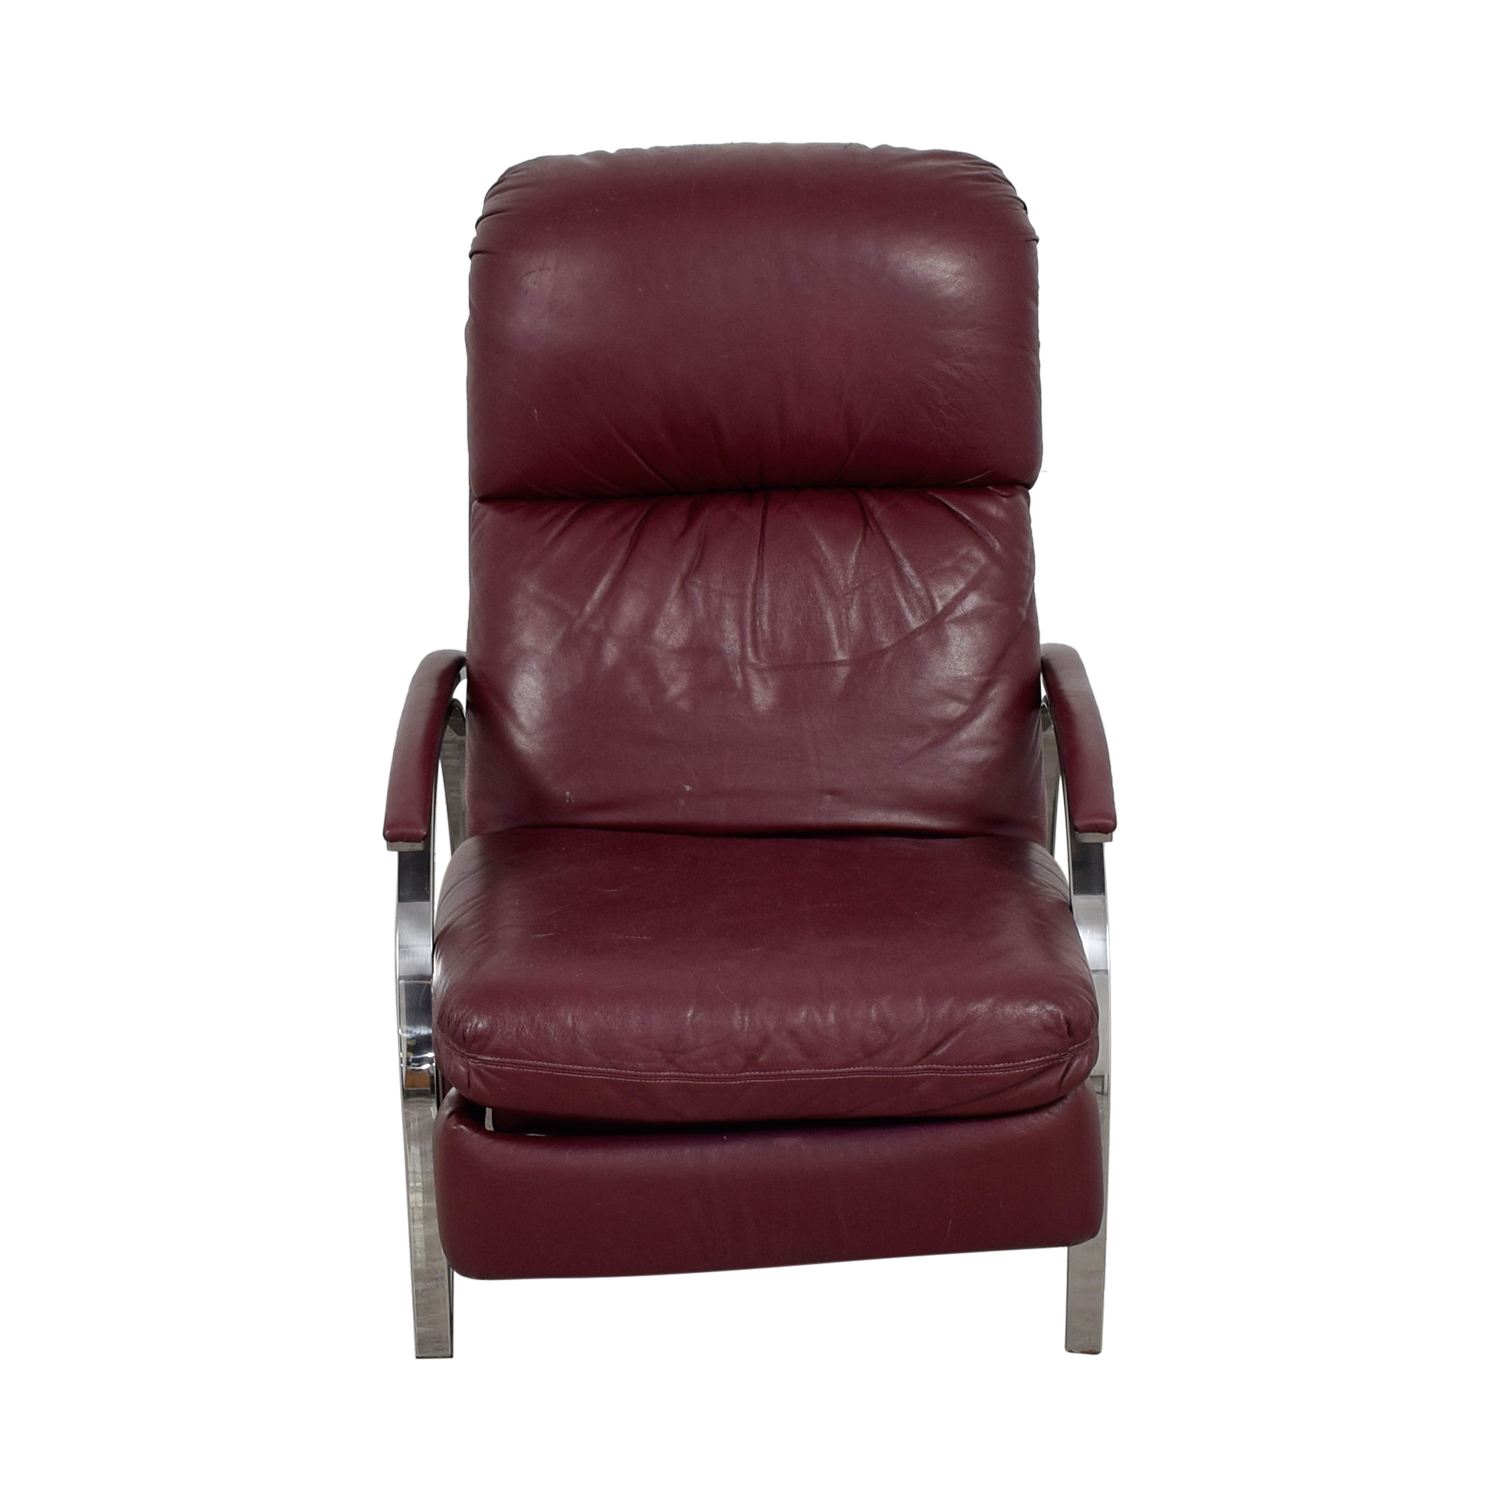 Off Burgundy Leather Recliner Chair Chairs Jpg 1500x1500 Burgundy Leather  Chair